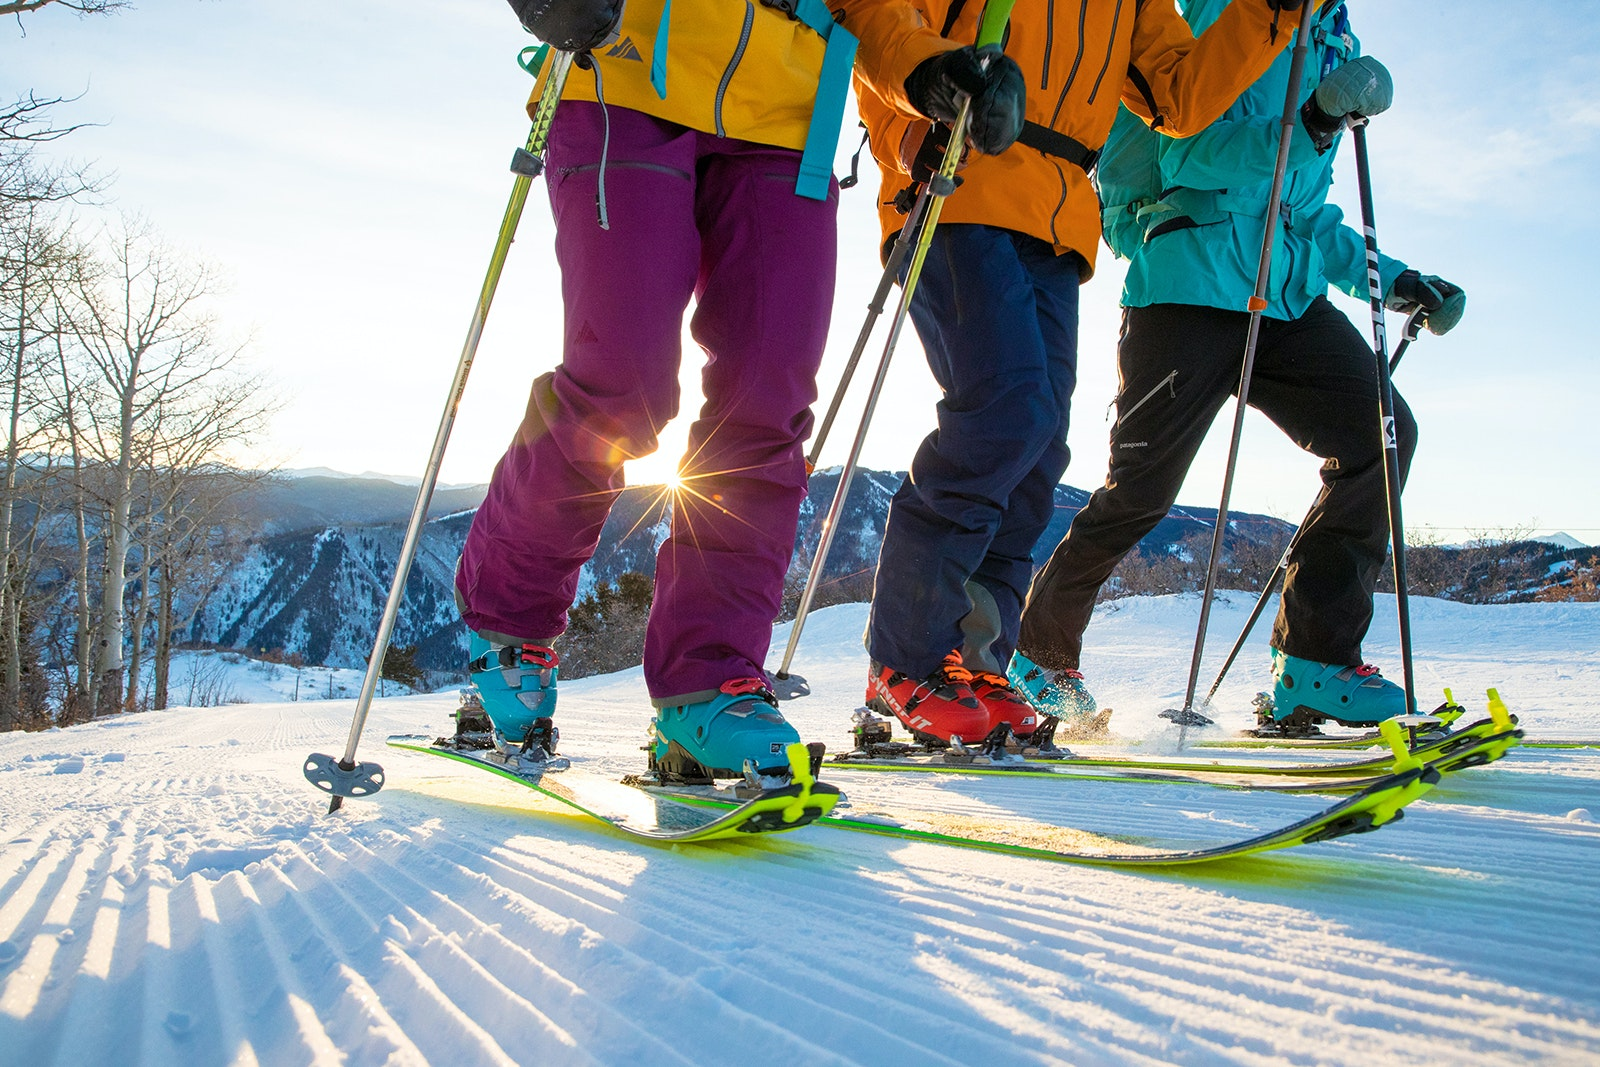 Special synthetic coverings attach to the bottom of skis and provide the necessary traction for uphill skiing.